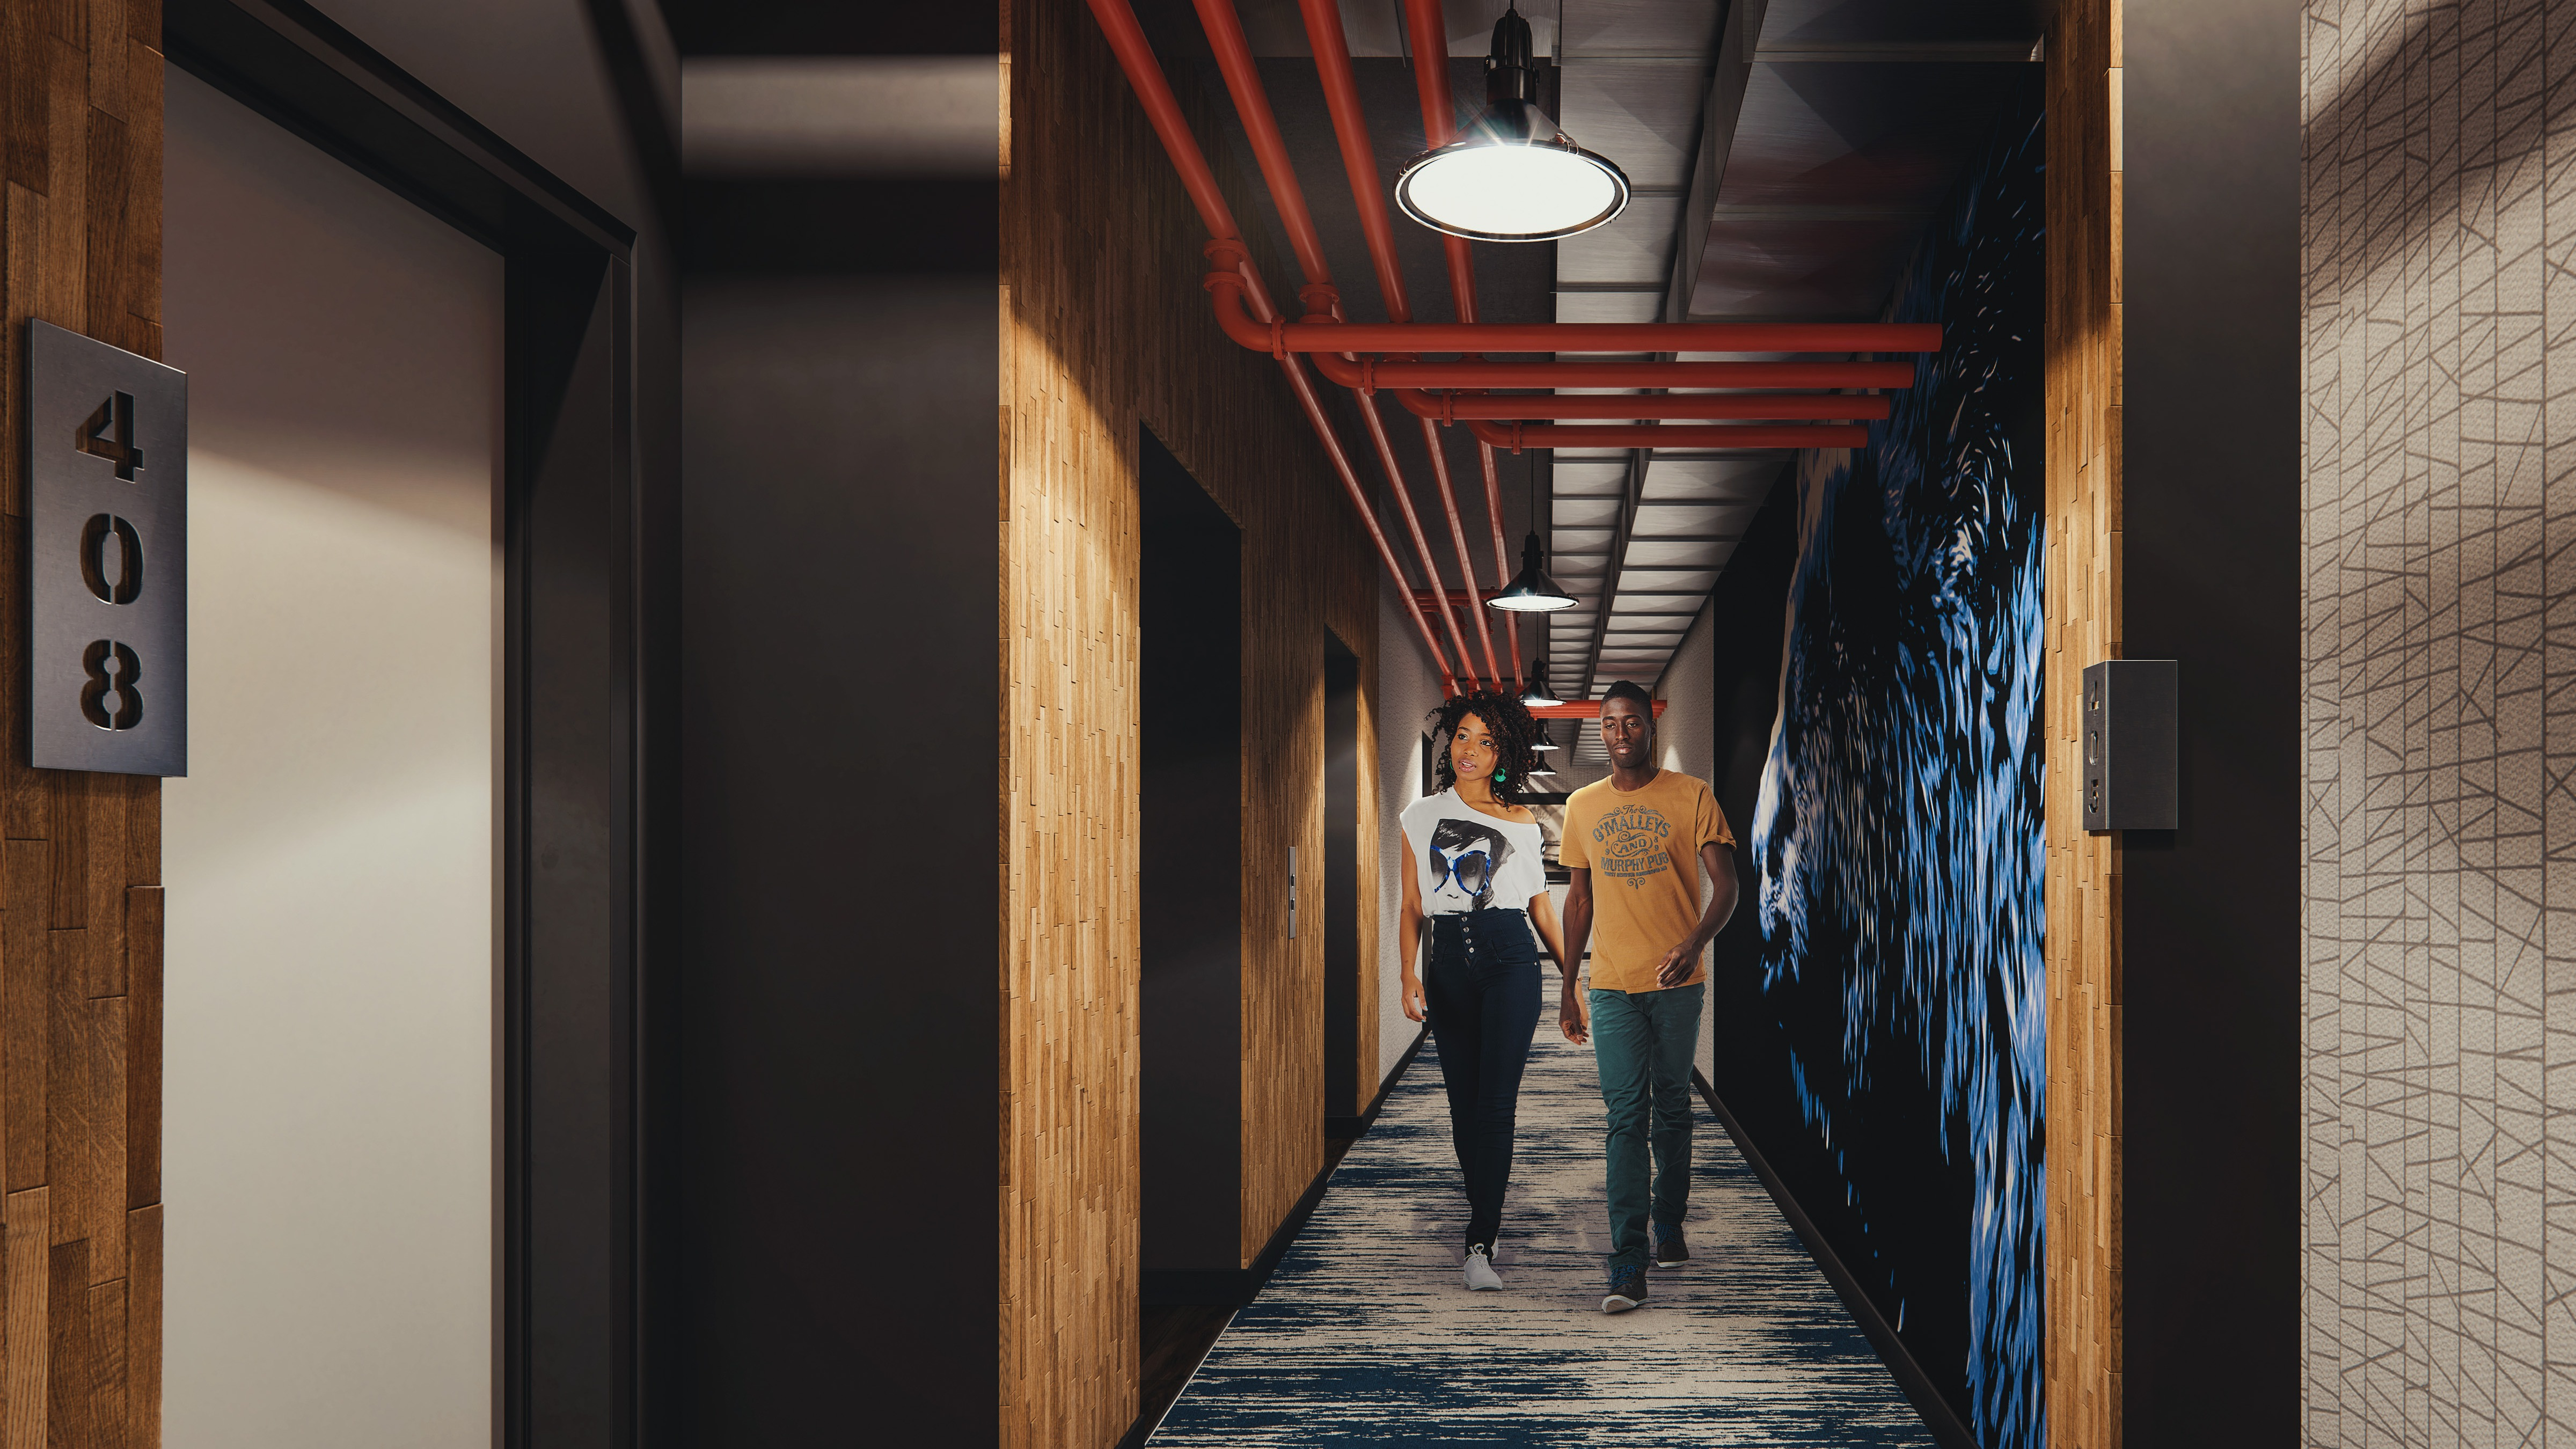 Rendering of residential hallway with two patrons strolling through